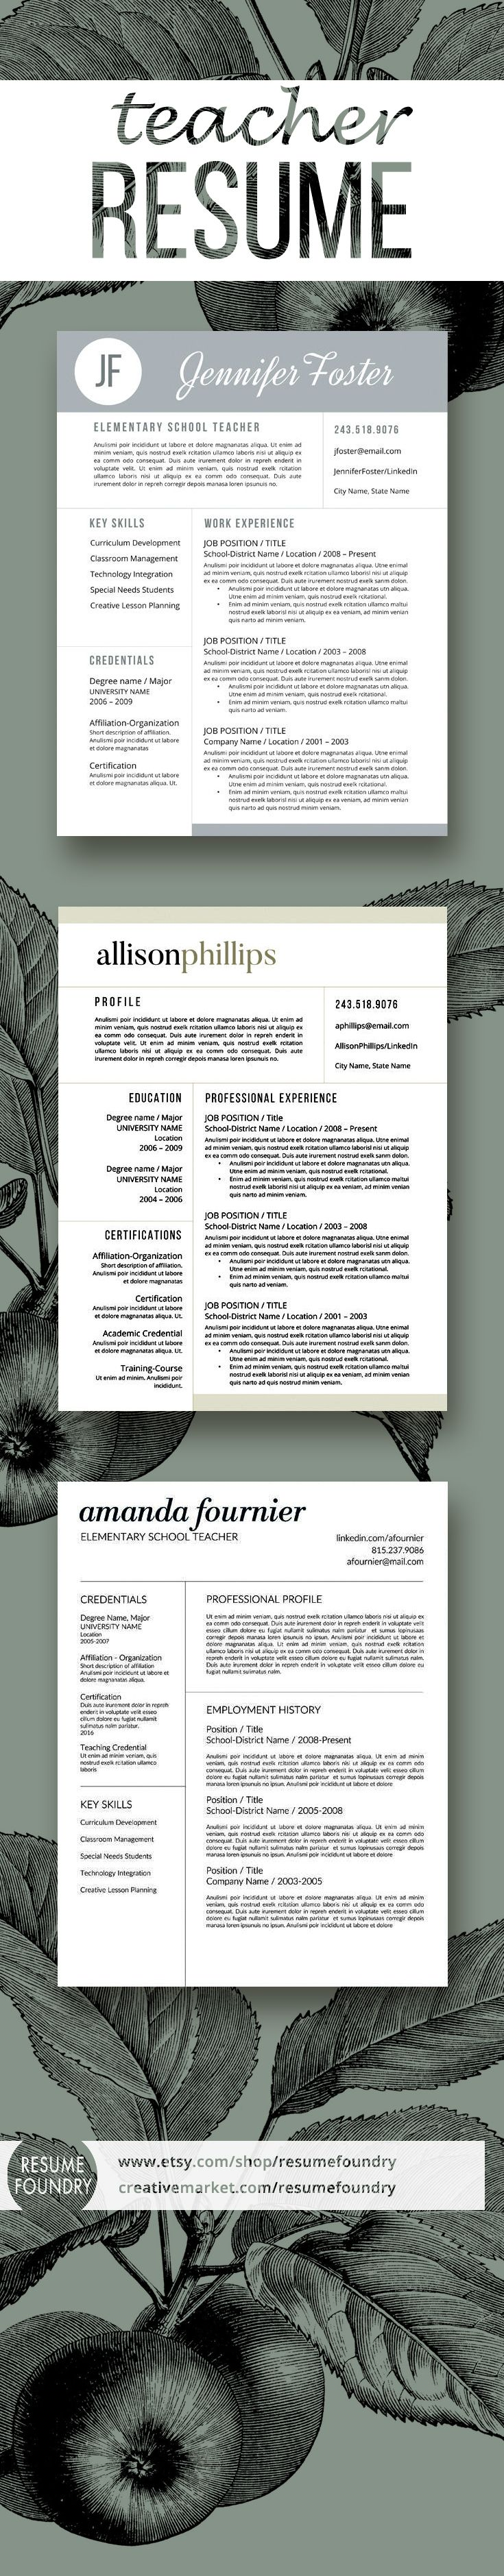 Inspired Resume Templates for the Stylish Professional